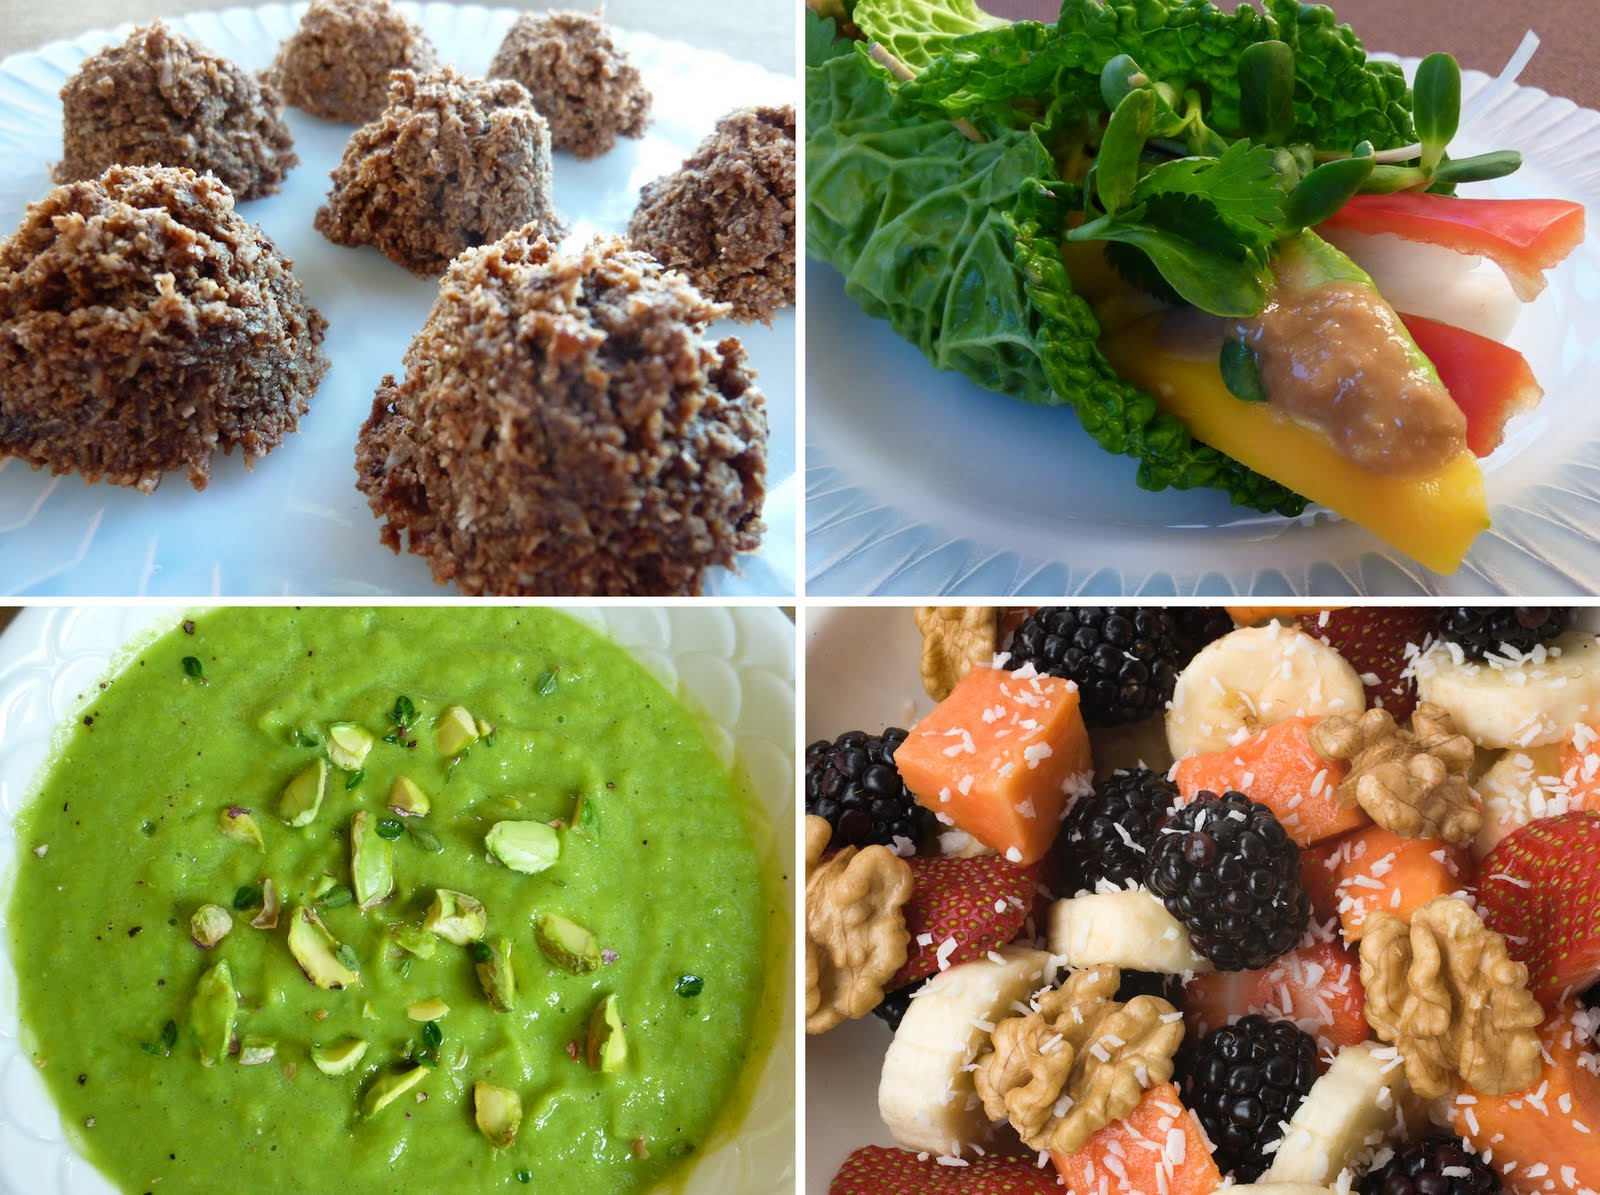 Foods for long life raw vegan easter brunch or dinner menu raw vegan easter brunch or dinner menu forumfinder Choice Image